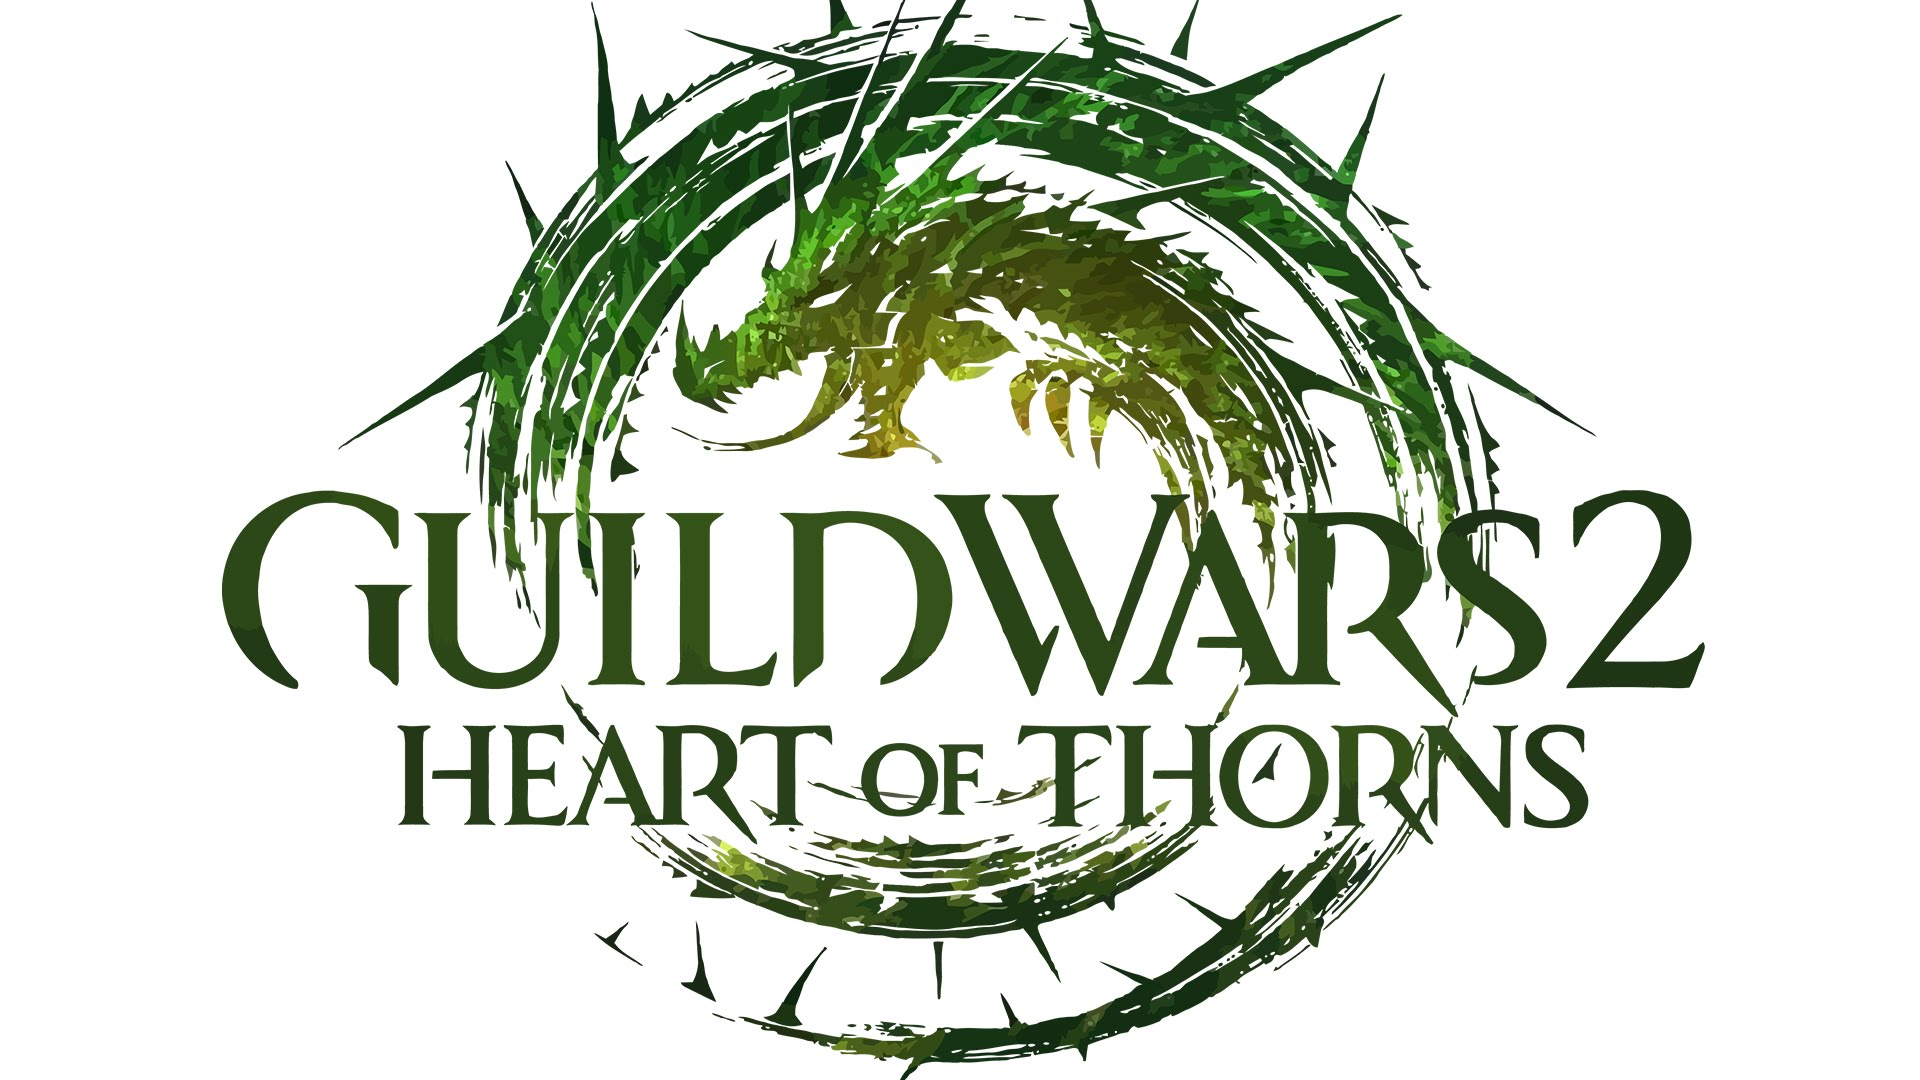 Guild Wars 2 Heart of Thorns + Base Game GLOBAL